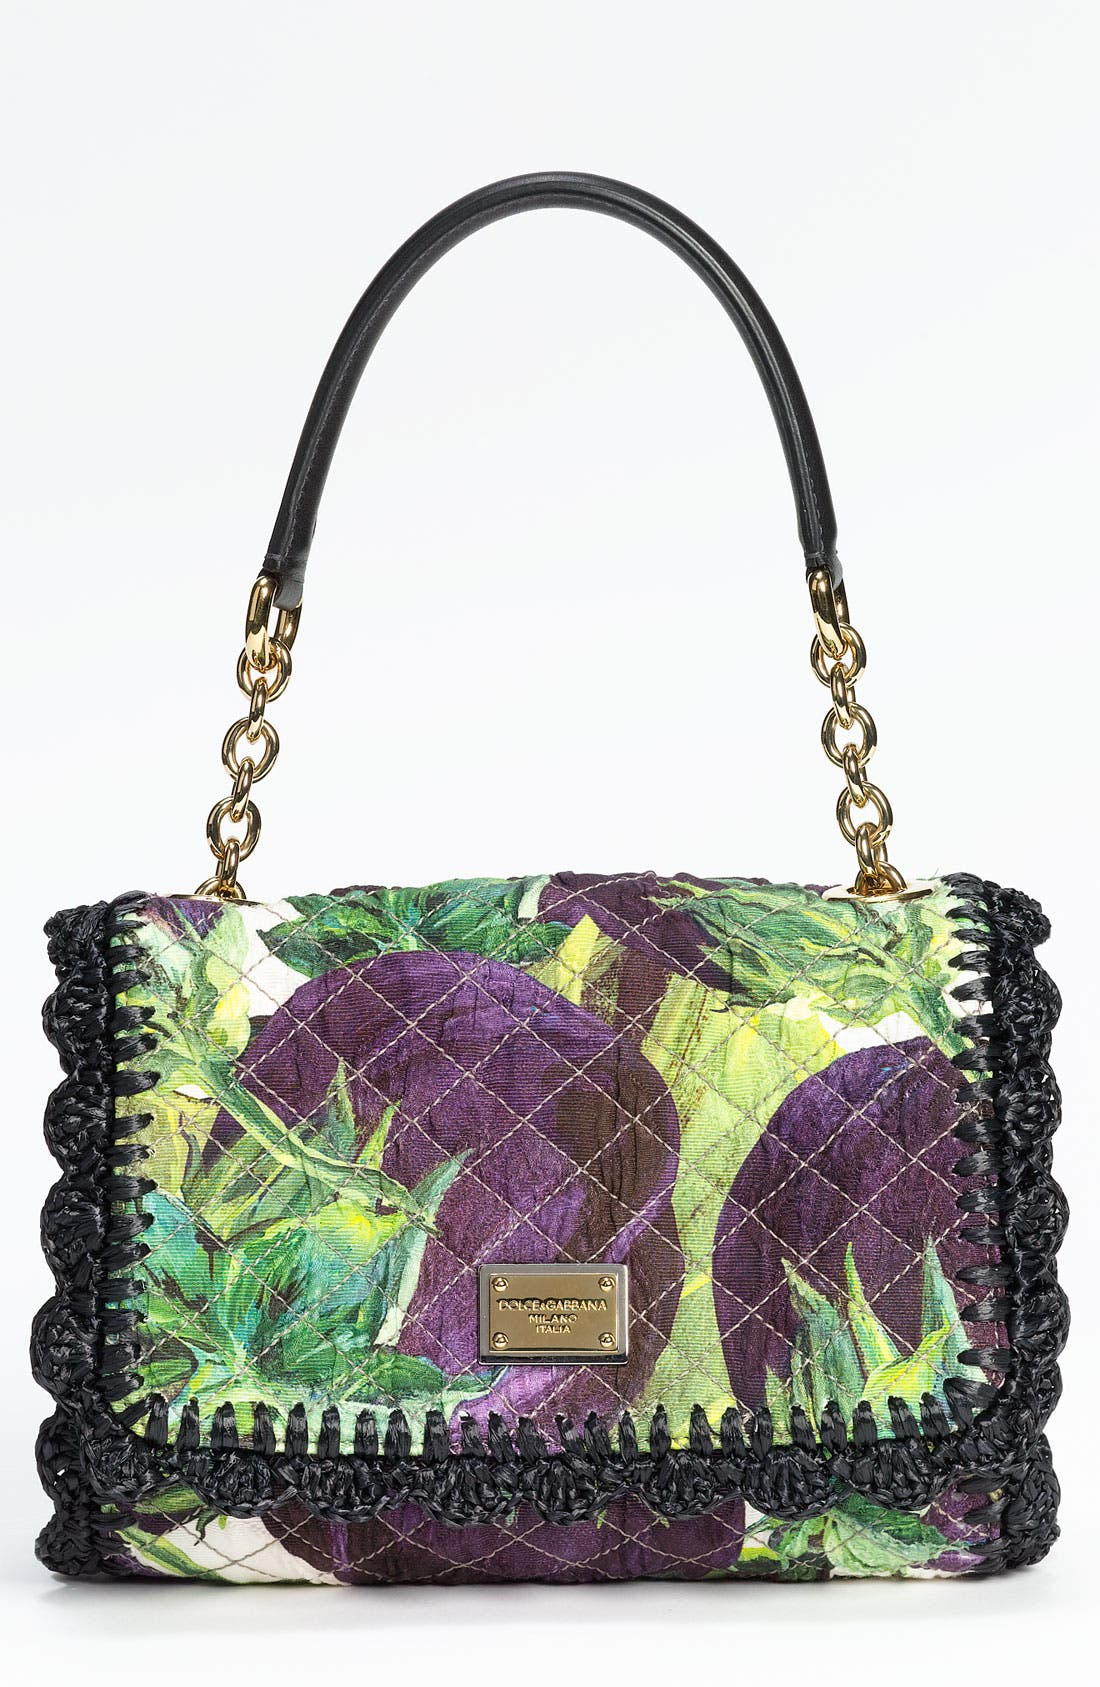 Alternate Image 1 Selected - Dolce&Gabbana 'Miss Dolce Crochet' Shoulder Bag